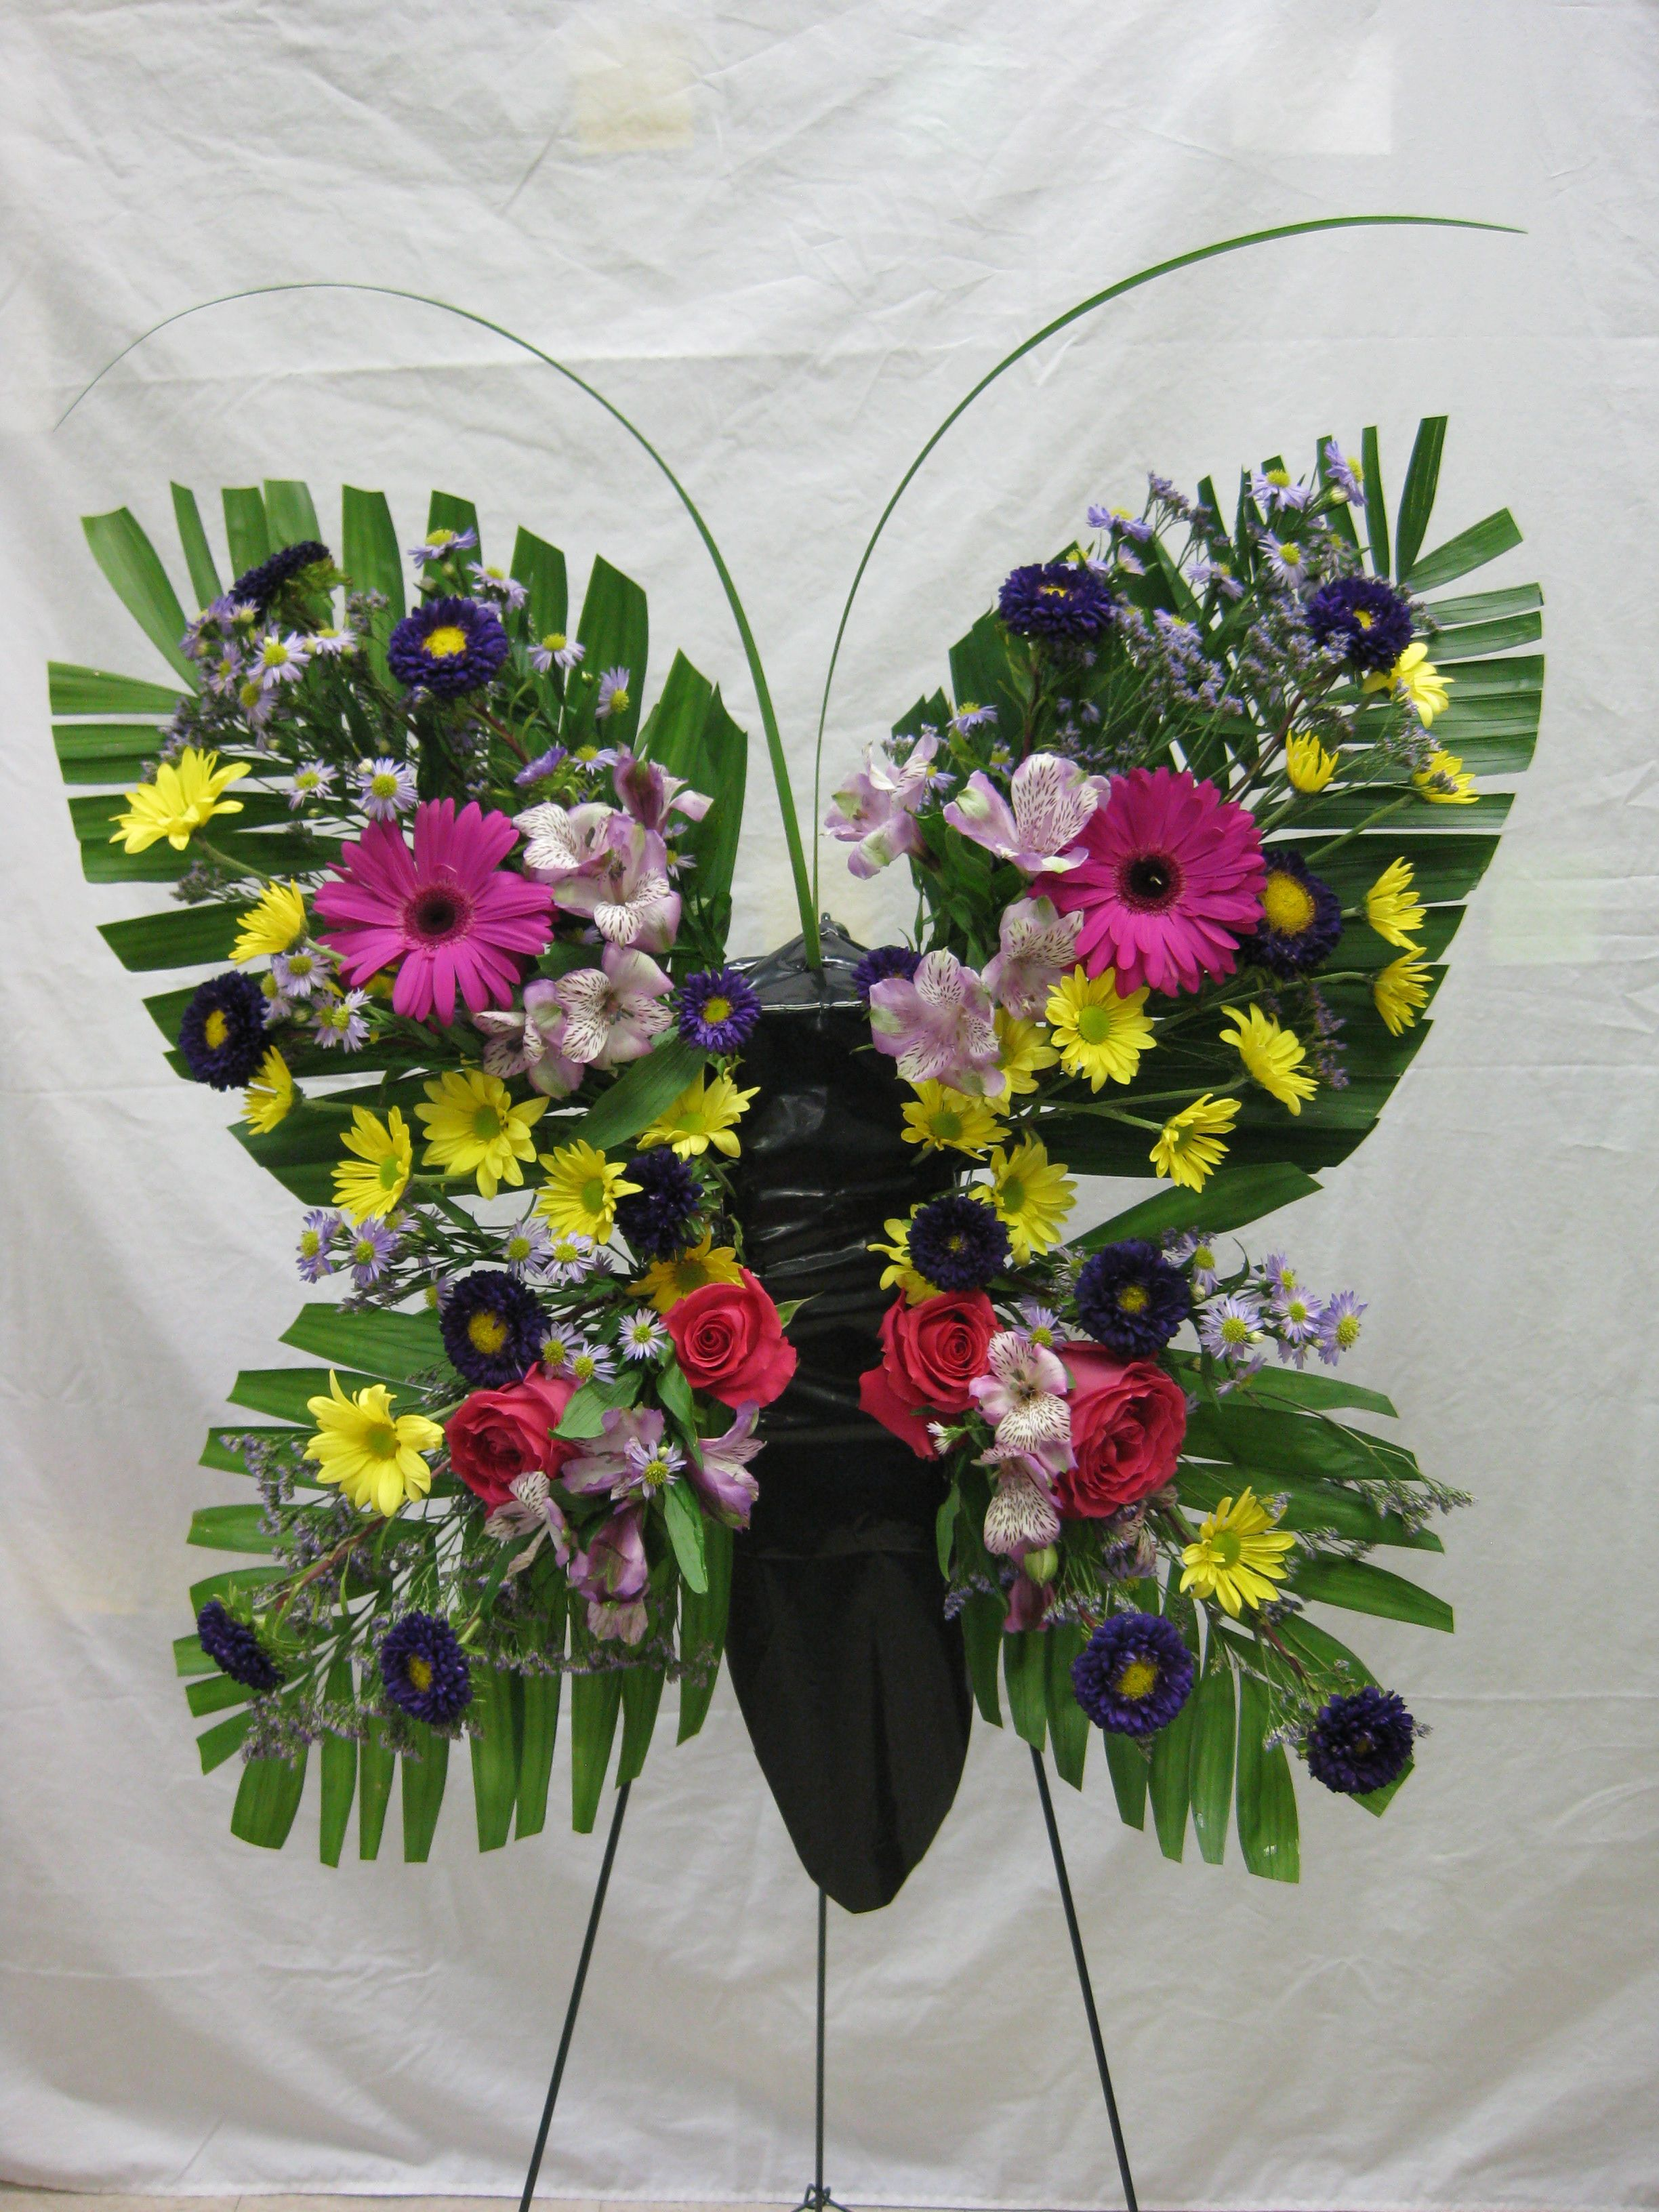 Funeral flower stand funeralflowers butterfly dry funeral flower stand funeralflowers butterfly ms funeral floral arrangements izmirmasajfo